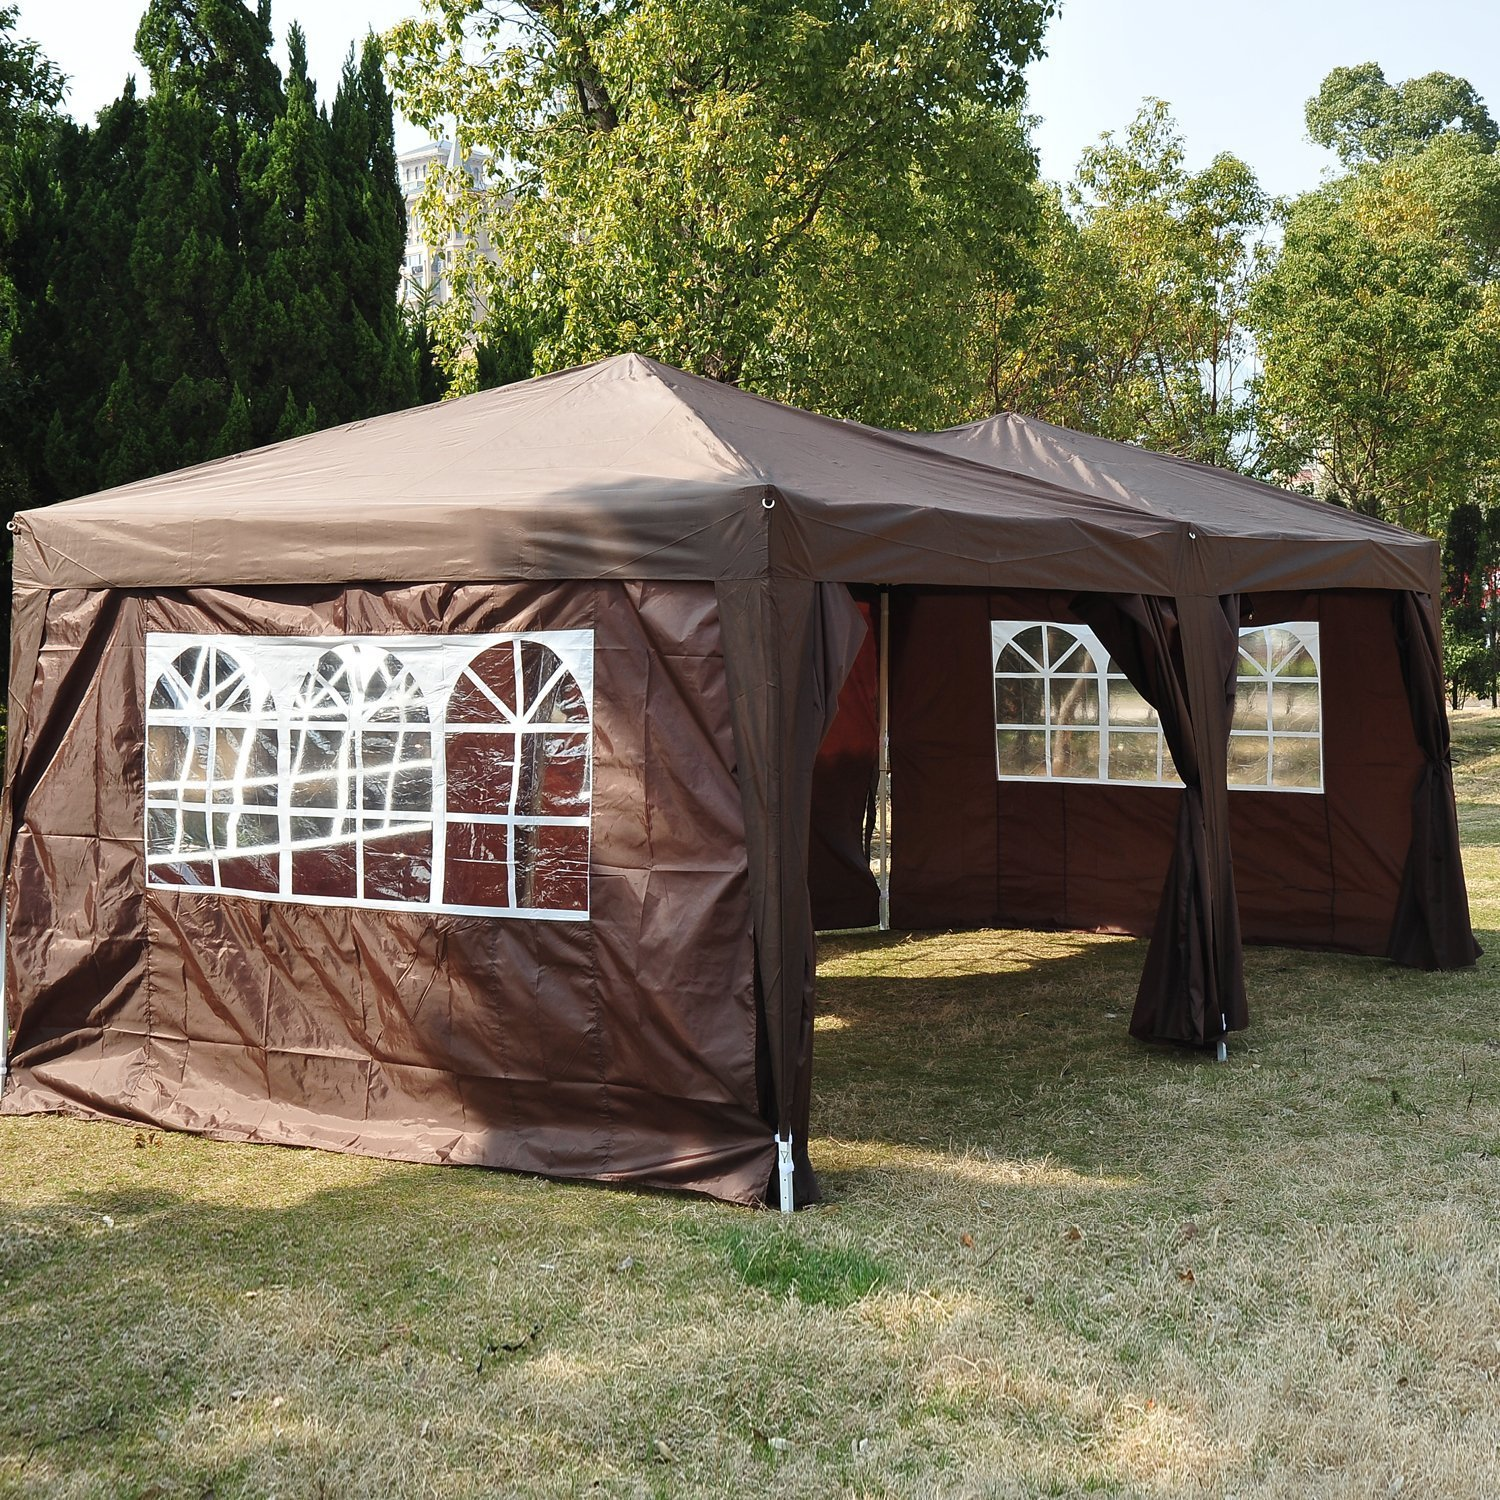 Outsunny 6m X 3m Garden Heavy Duty Pop Up Gazebo Marquee Party Tent Wedding Water Resistant Awning Canopy Black With Free Storage Bag Amazoncouk